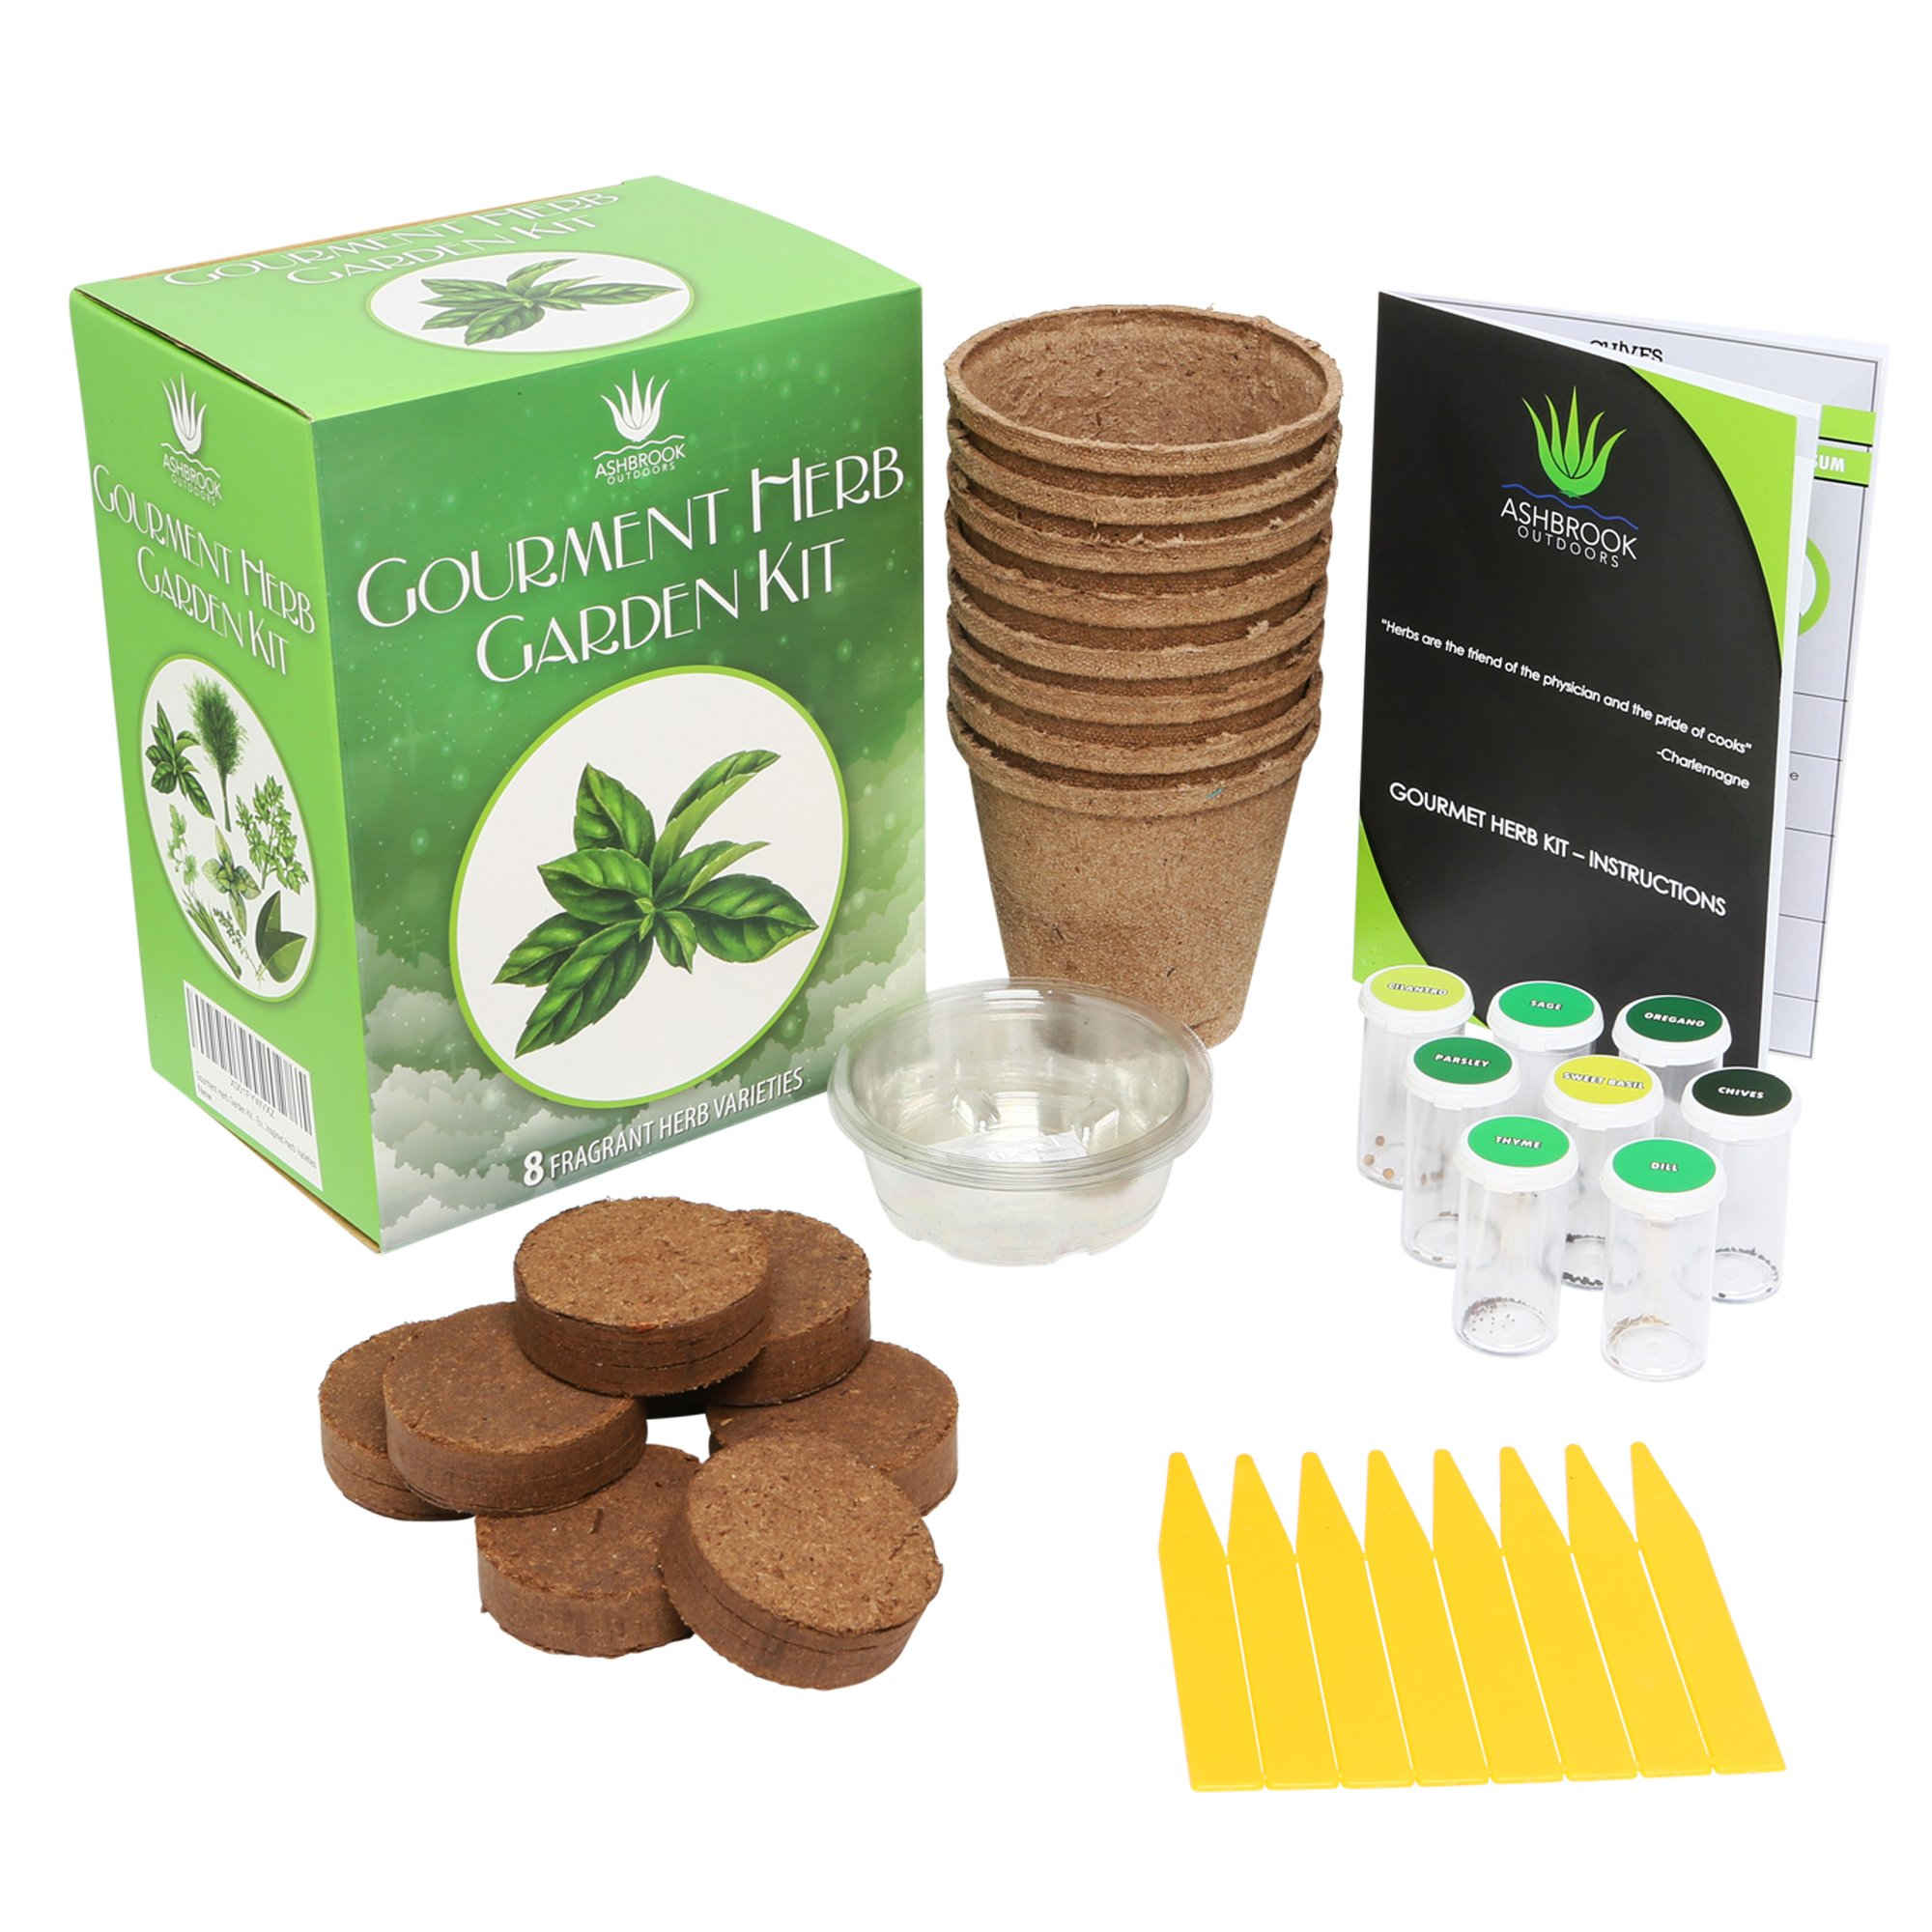 Herb Garden Starter Kit - Everything You Need to Grow Your Own Organic Herb Garden from a Seed | 8 Culinary Herb Varieties Including: Basil, Rosemary, Sage, Oregano, Parsley, Dill, Thyme, Chives